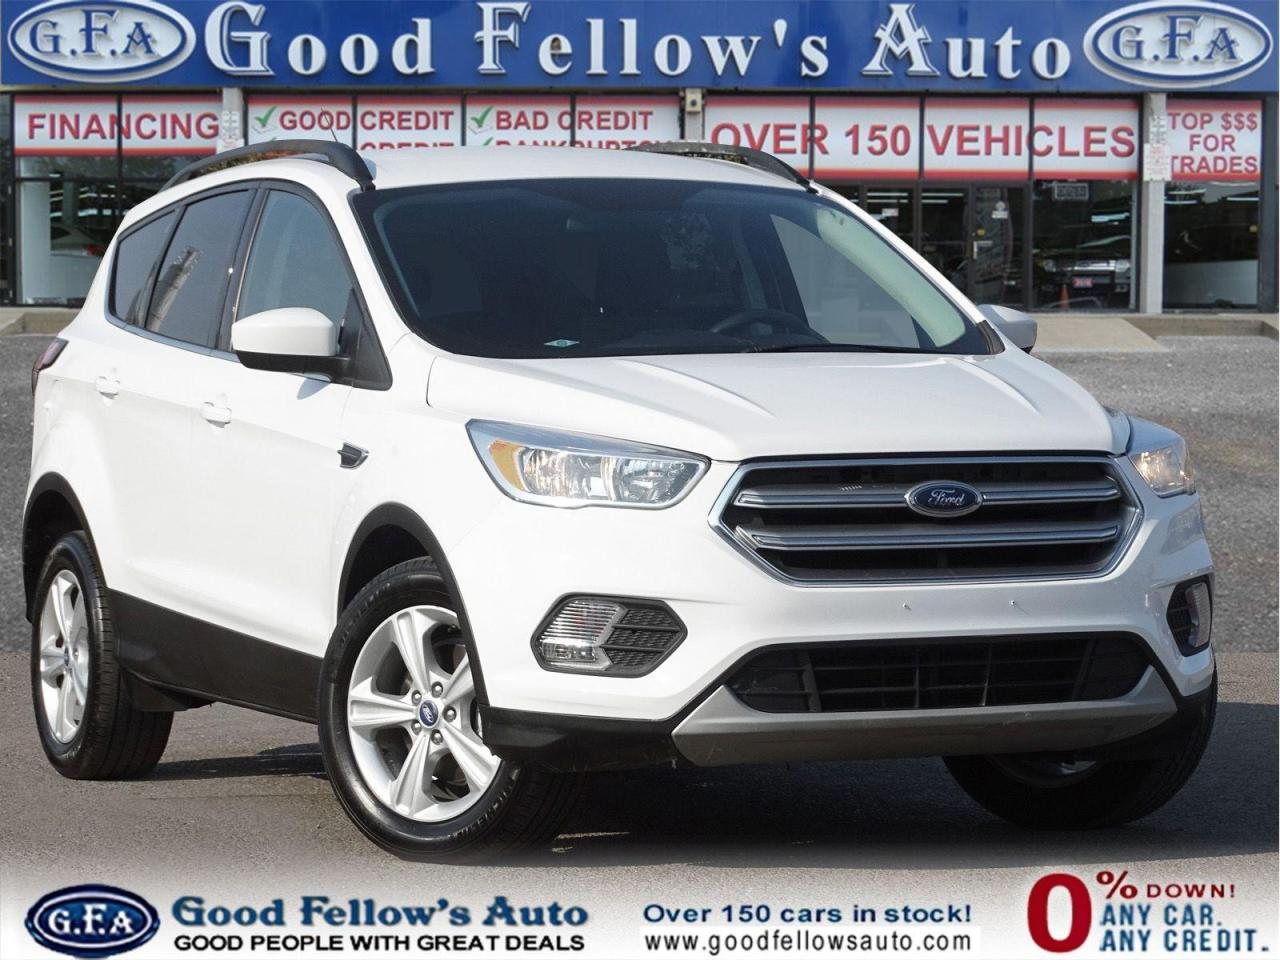 used 2018 Ford Escape car, priced at $13,400